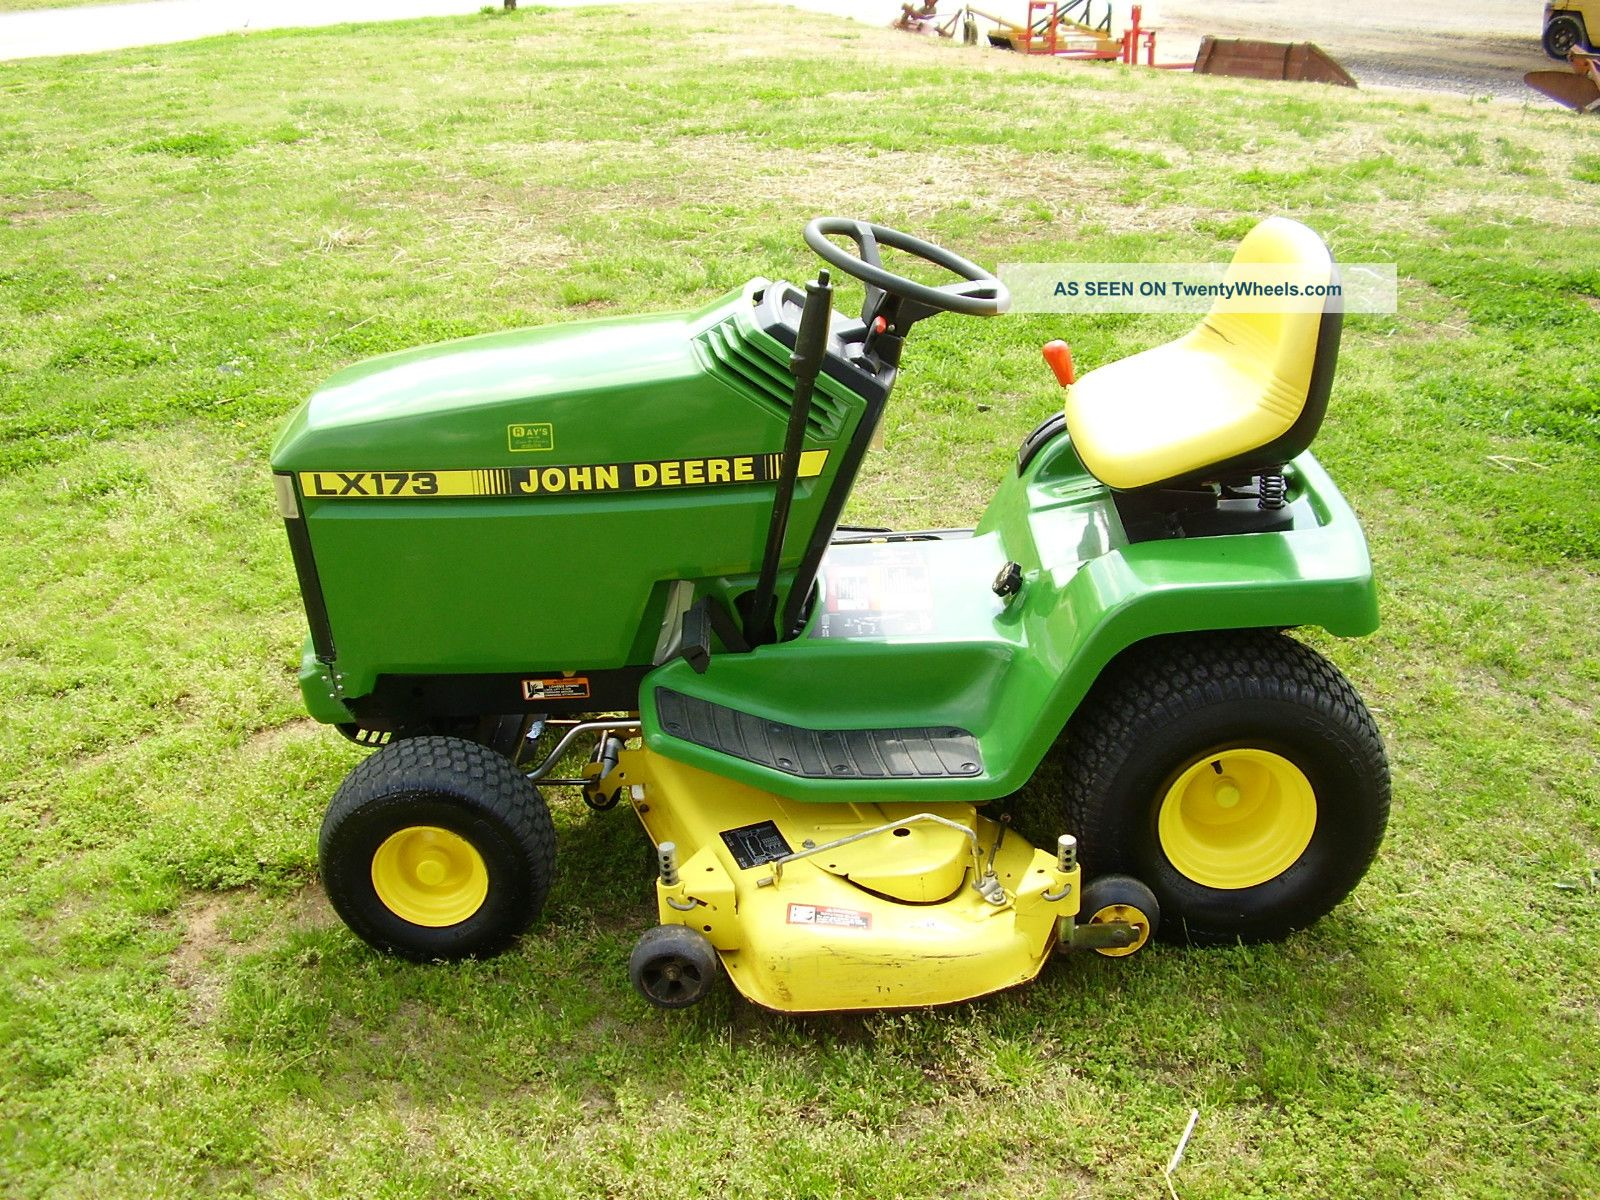 ... John Deere Lx 173 Riding Mower Tractors photo 8